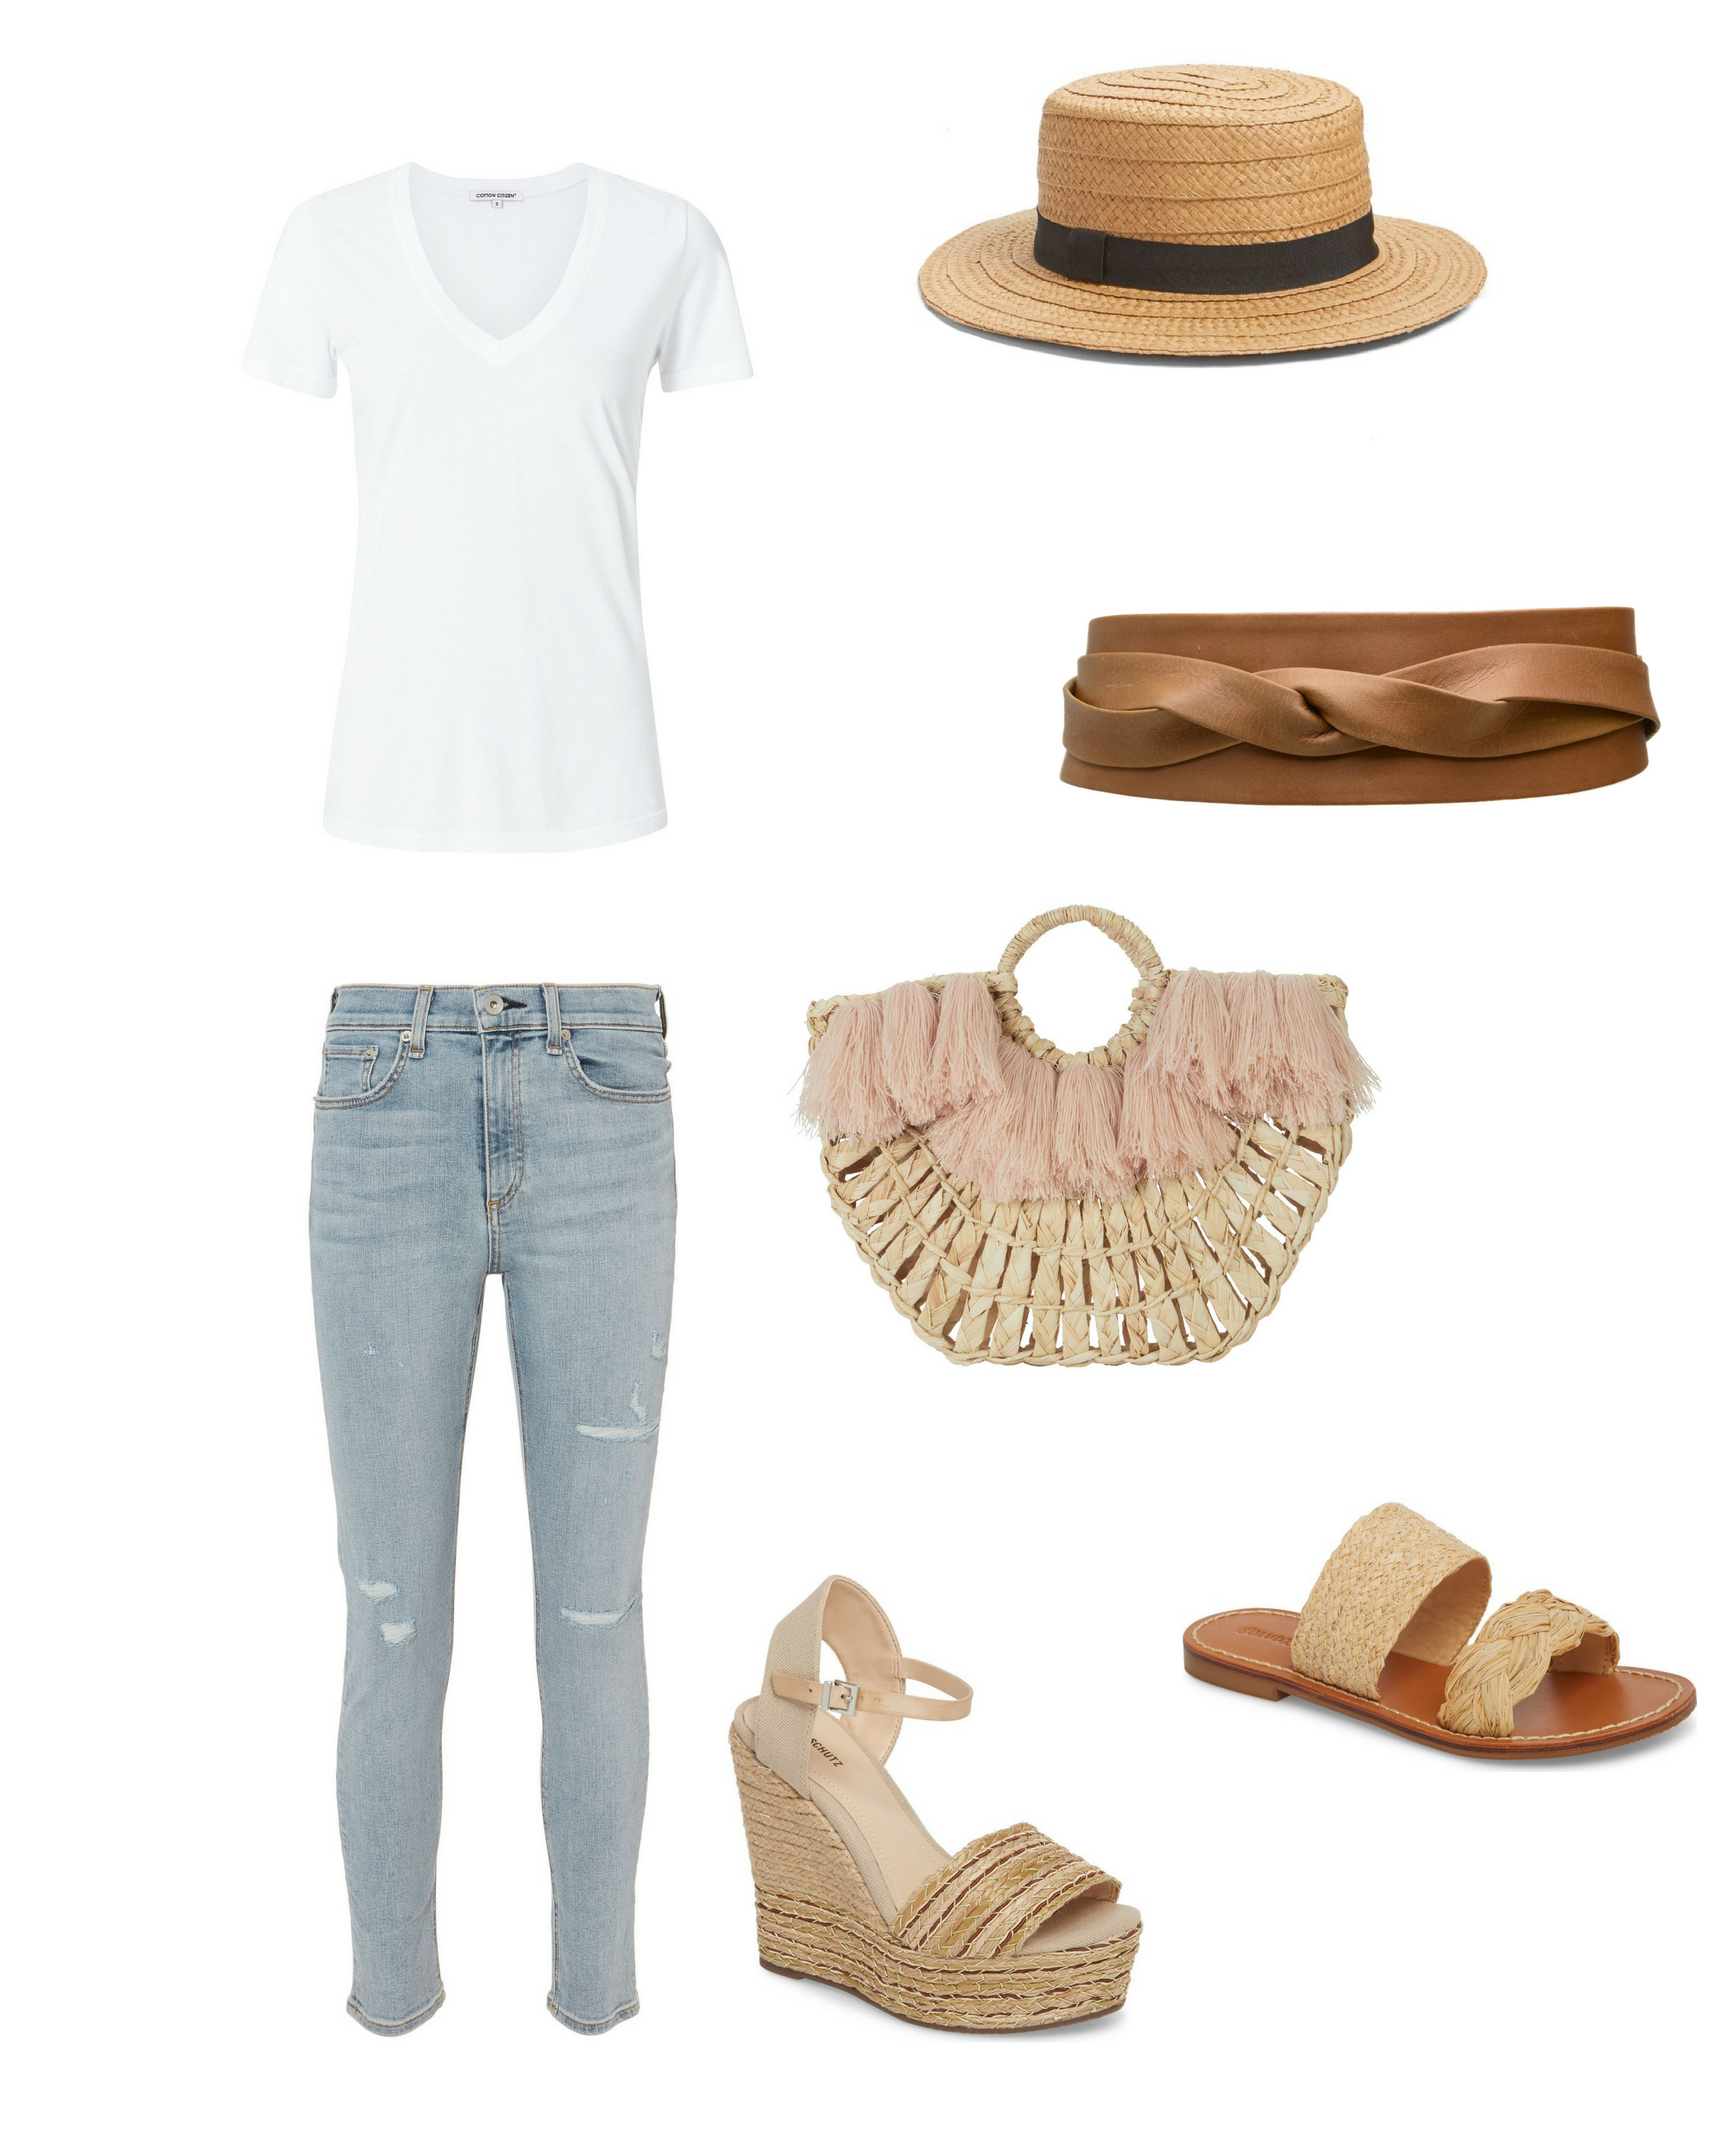 Match Accessories: Update Your White Tee and Light Jeans